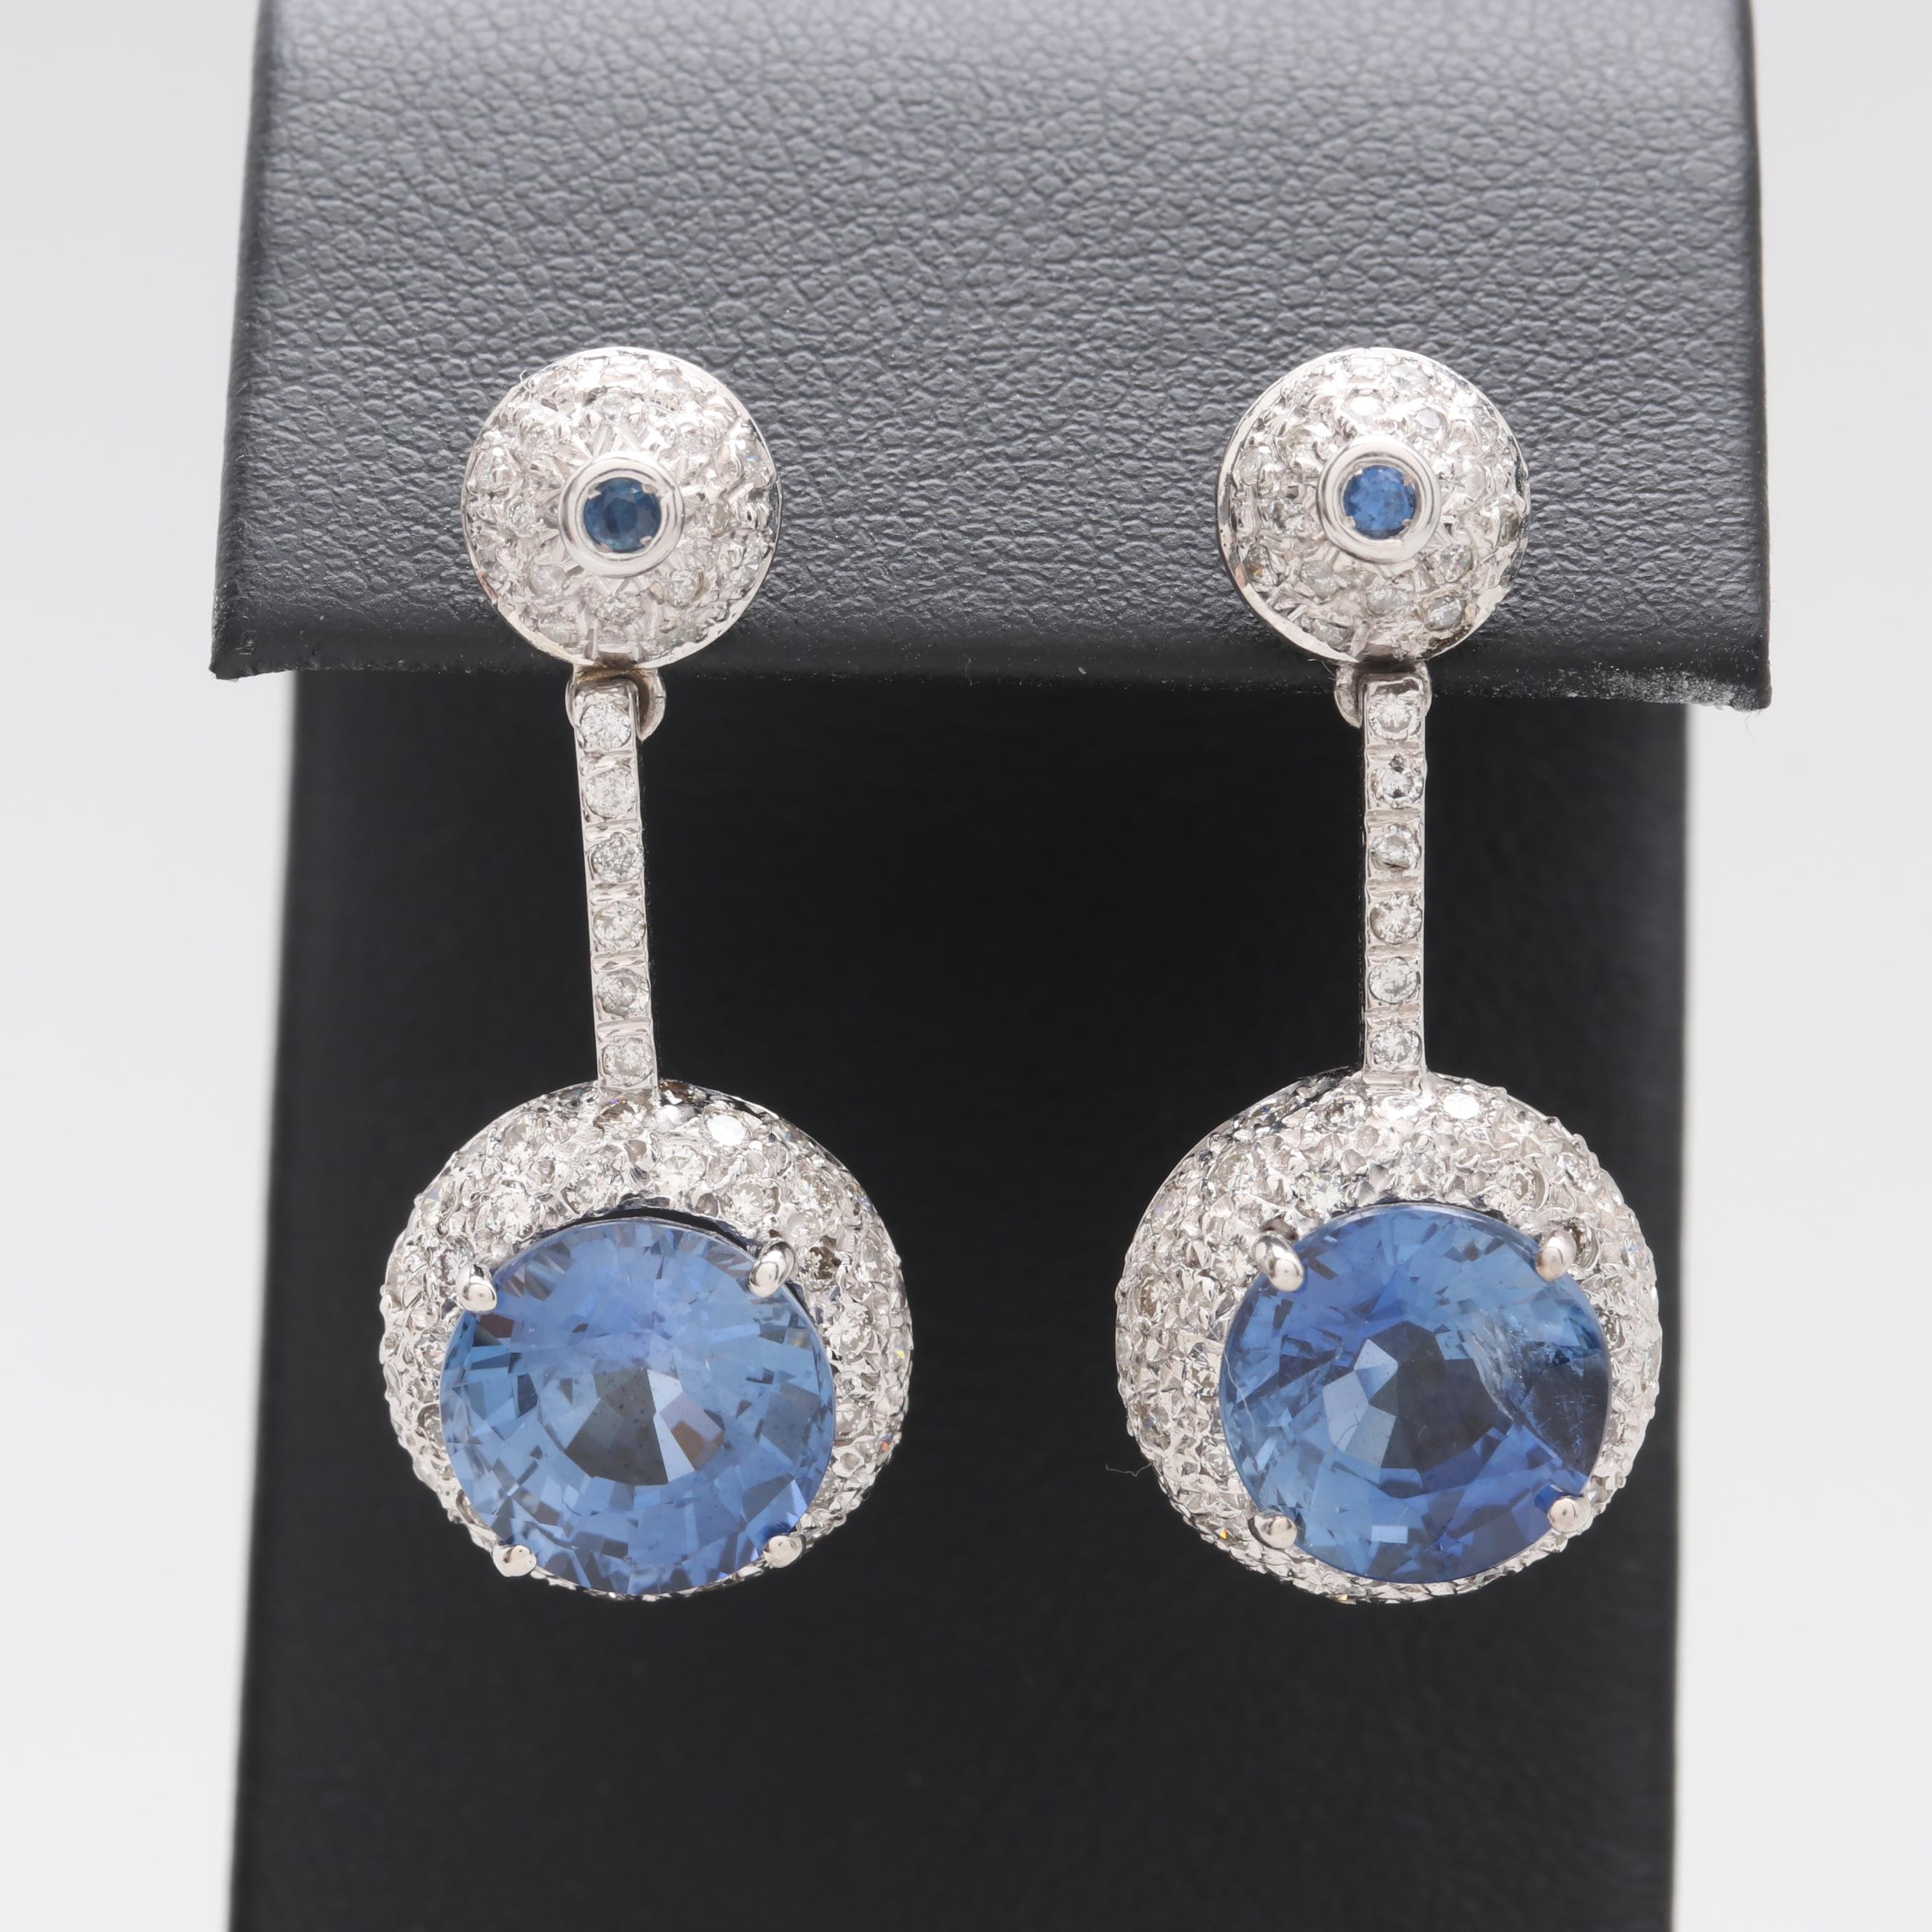 14K White Gold Synthetic Sapphire and Diamond Drop Earrings